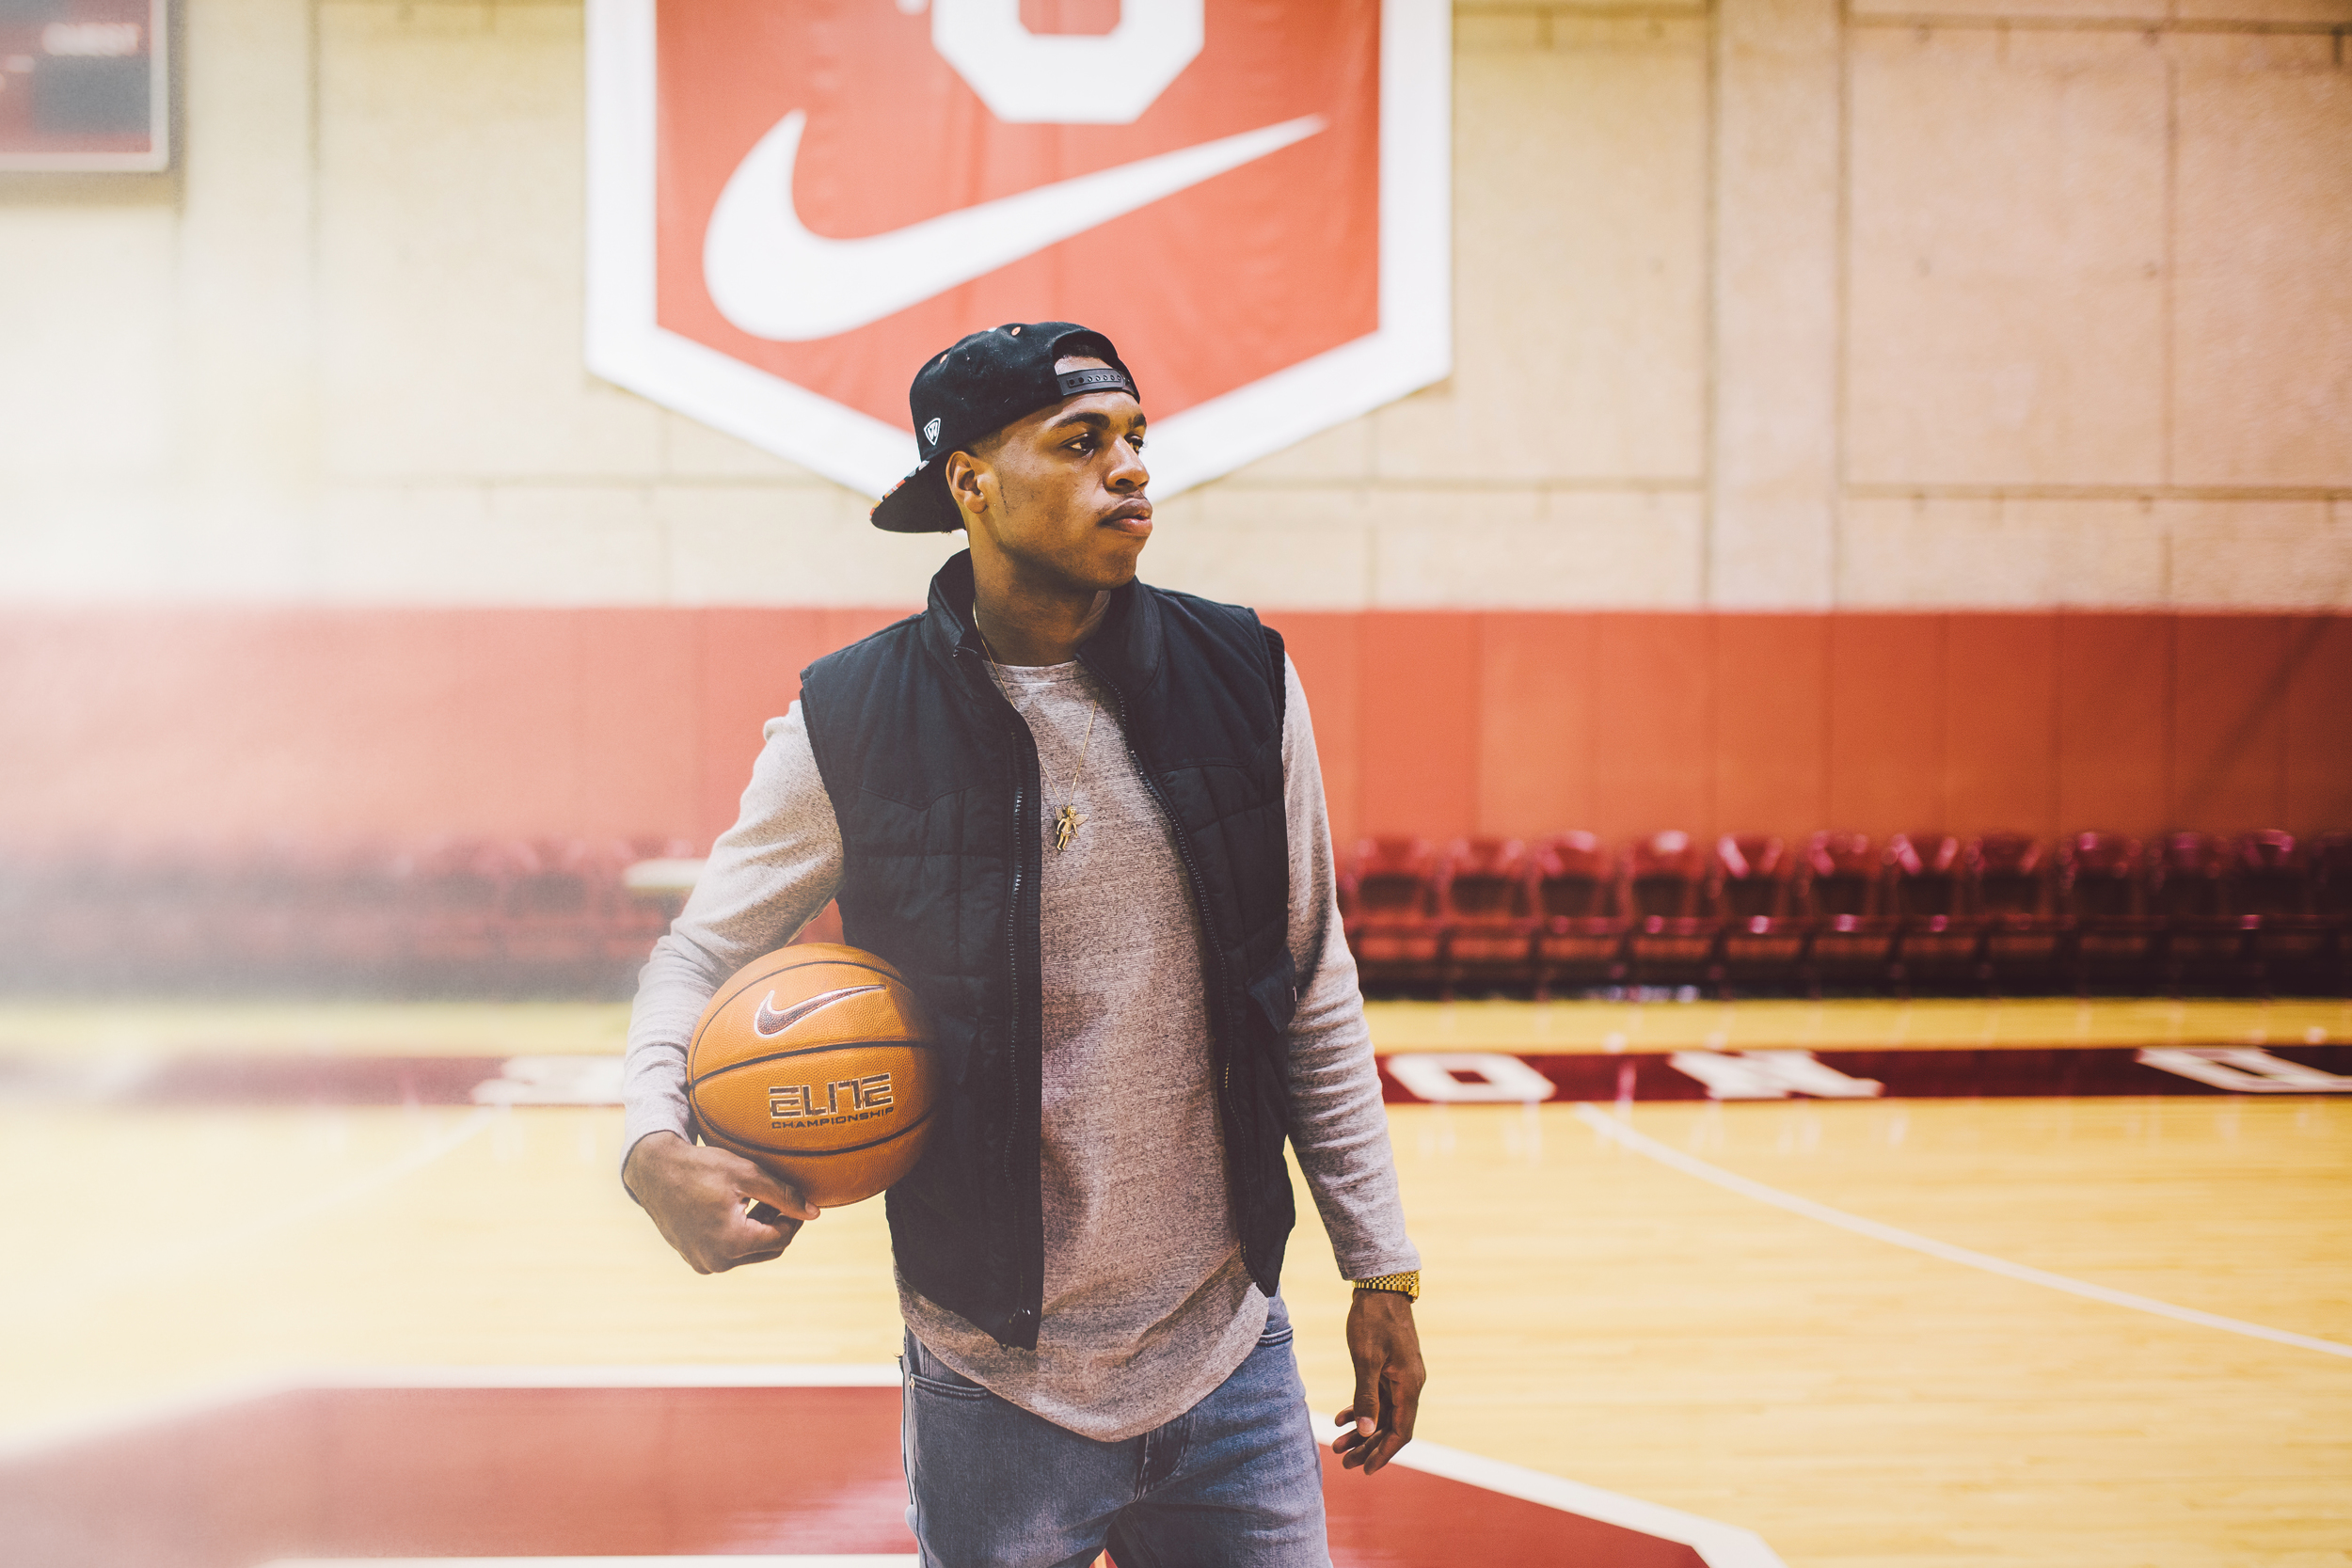 @hipstarod ,  Casual Jacket Photography  (Exclusive behind the scenes photos of Buddy Hield in the practice facility at The University of Oklahoma).